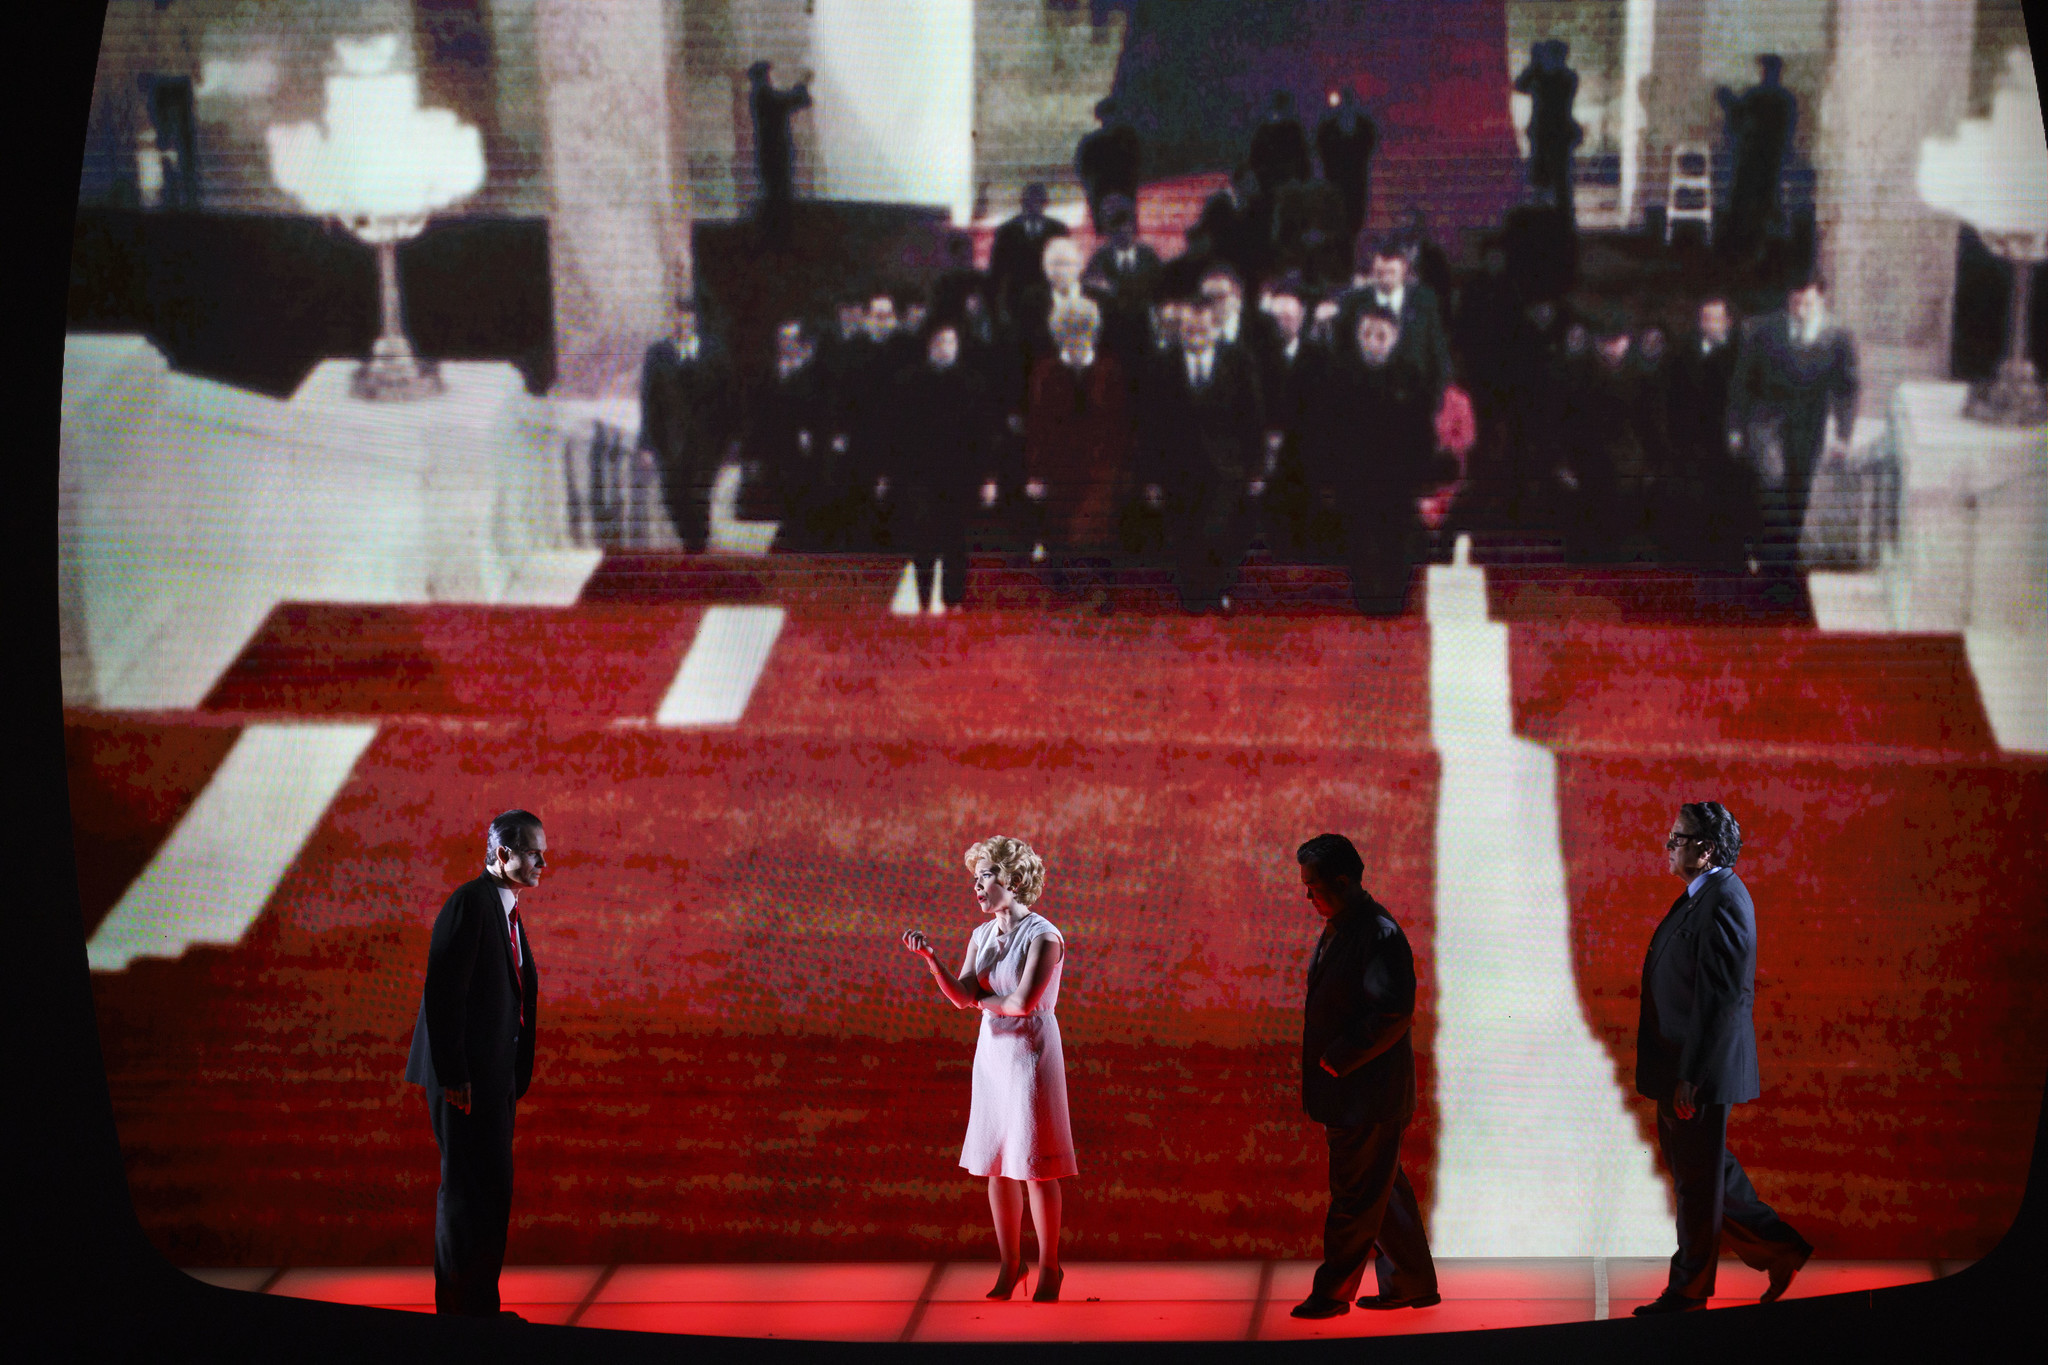 The live cast in the foreground, echoed by historical footage in the background.